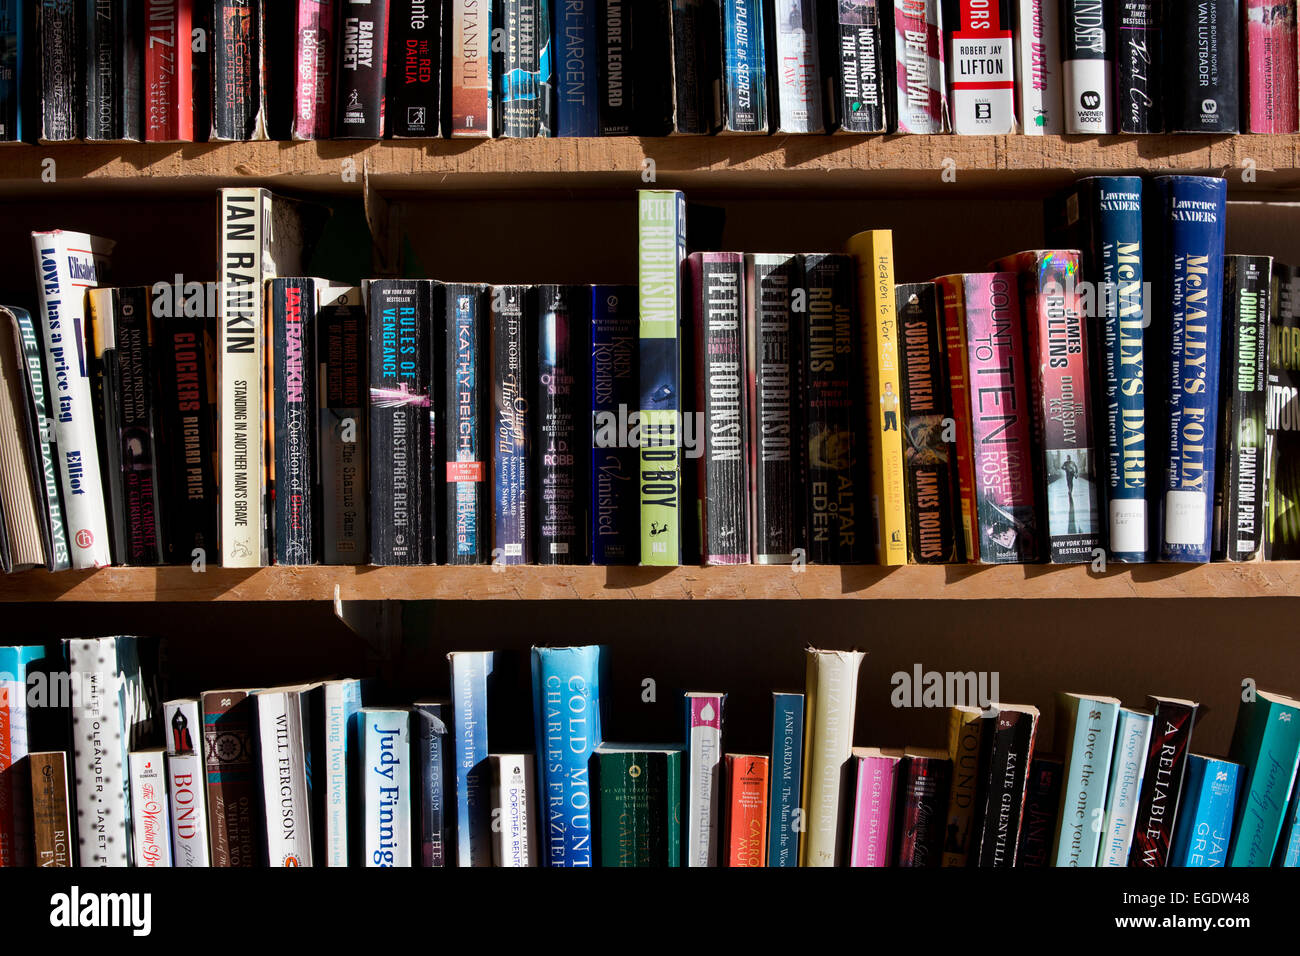 Outstanding Used Paperback Books Shelves Stock Photo 78981064 Alamy Download Free Architecture Designs Embacsunscenecom